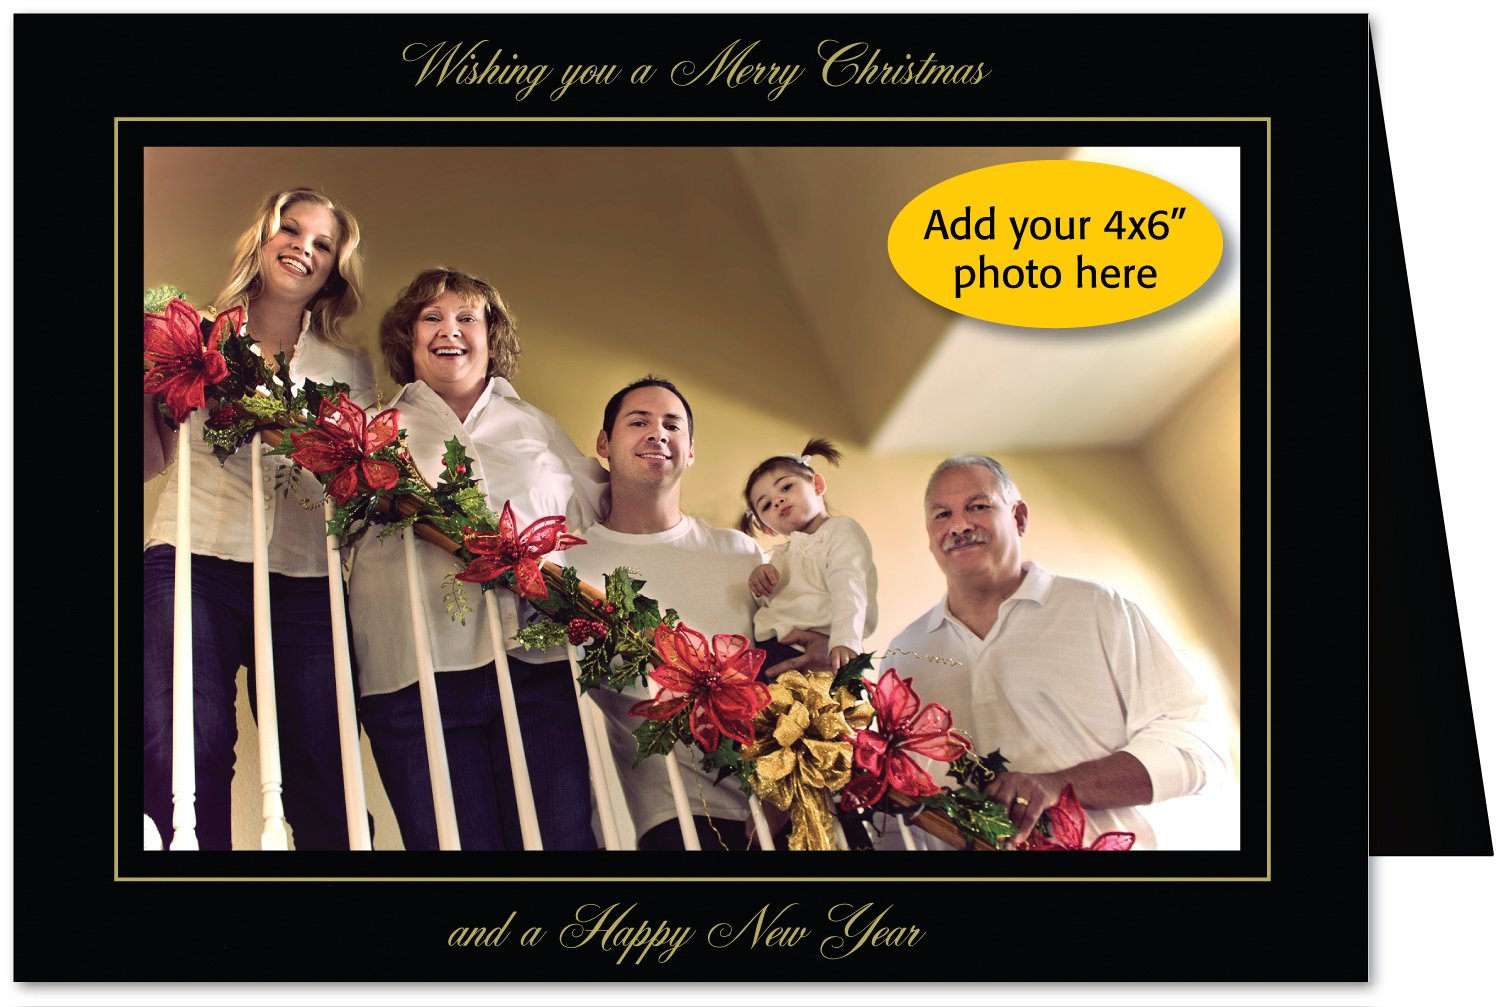 Photographer's Edge, Photo Insert Card, Premium Black Linen, Wishing you a Merry Christmas and a Happy New Year, Set of 10 for 4x6 Photos